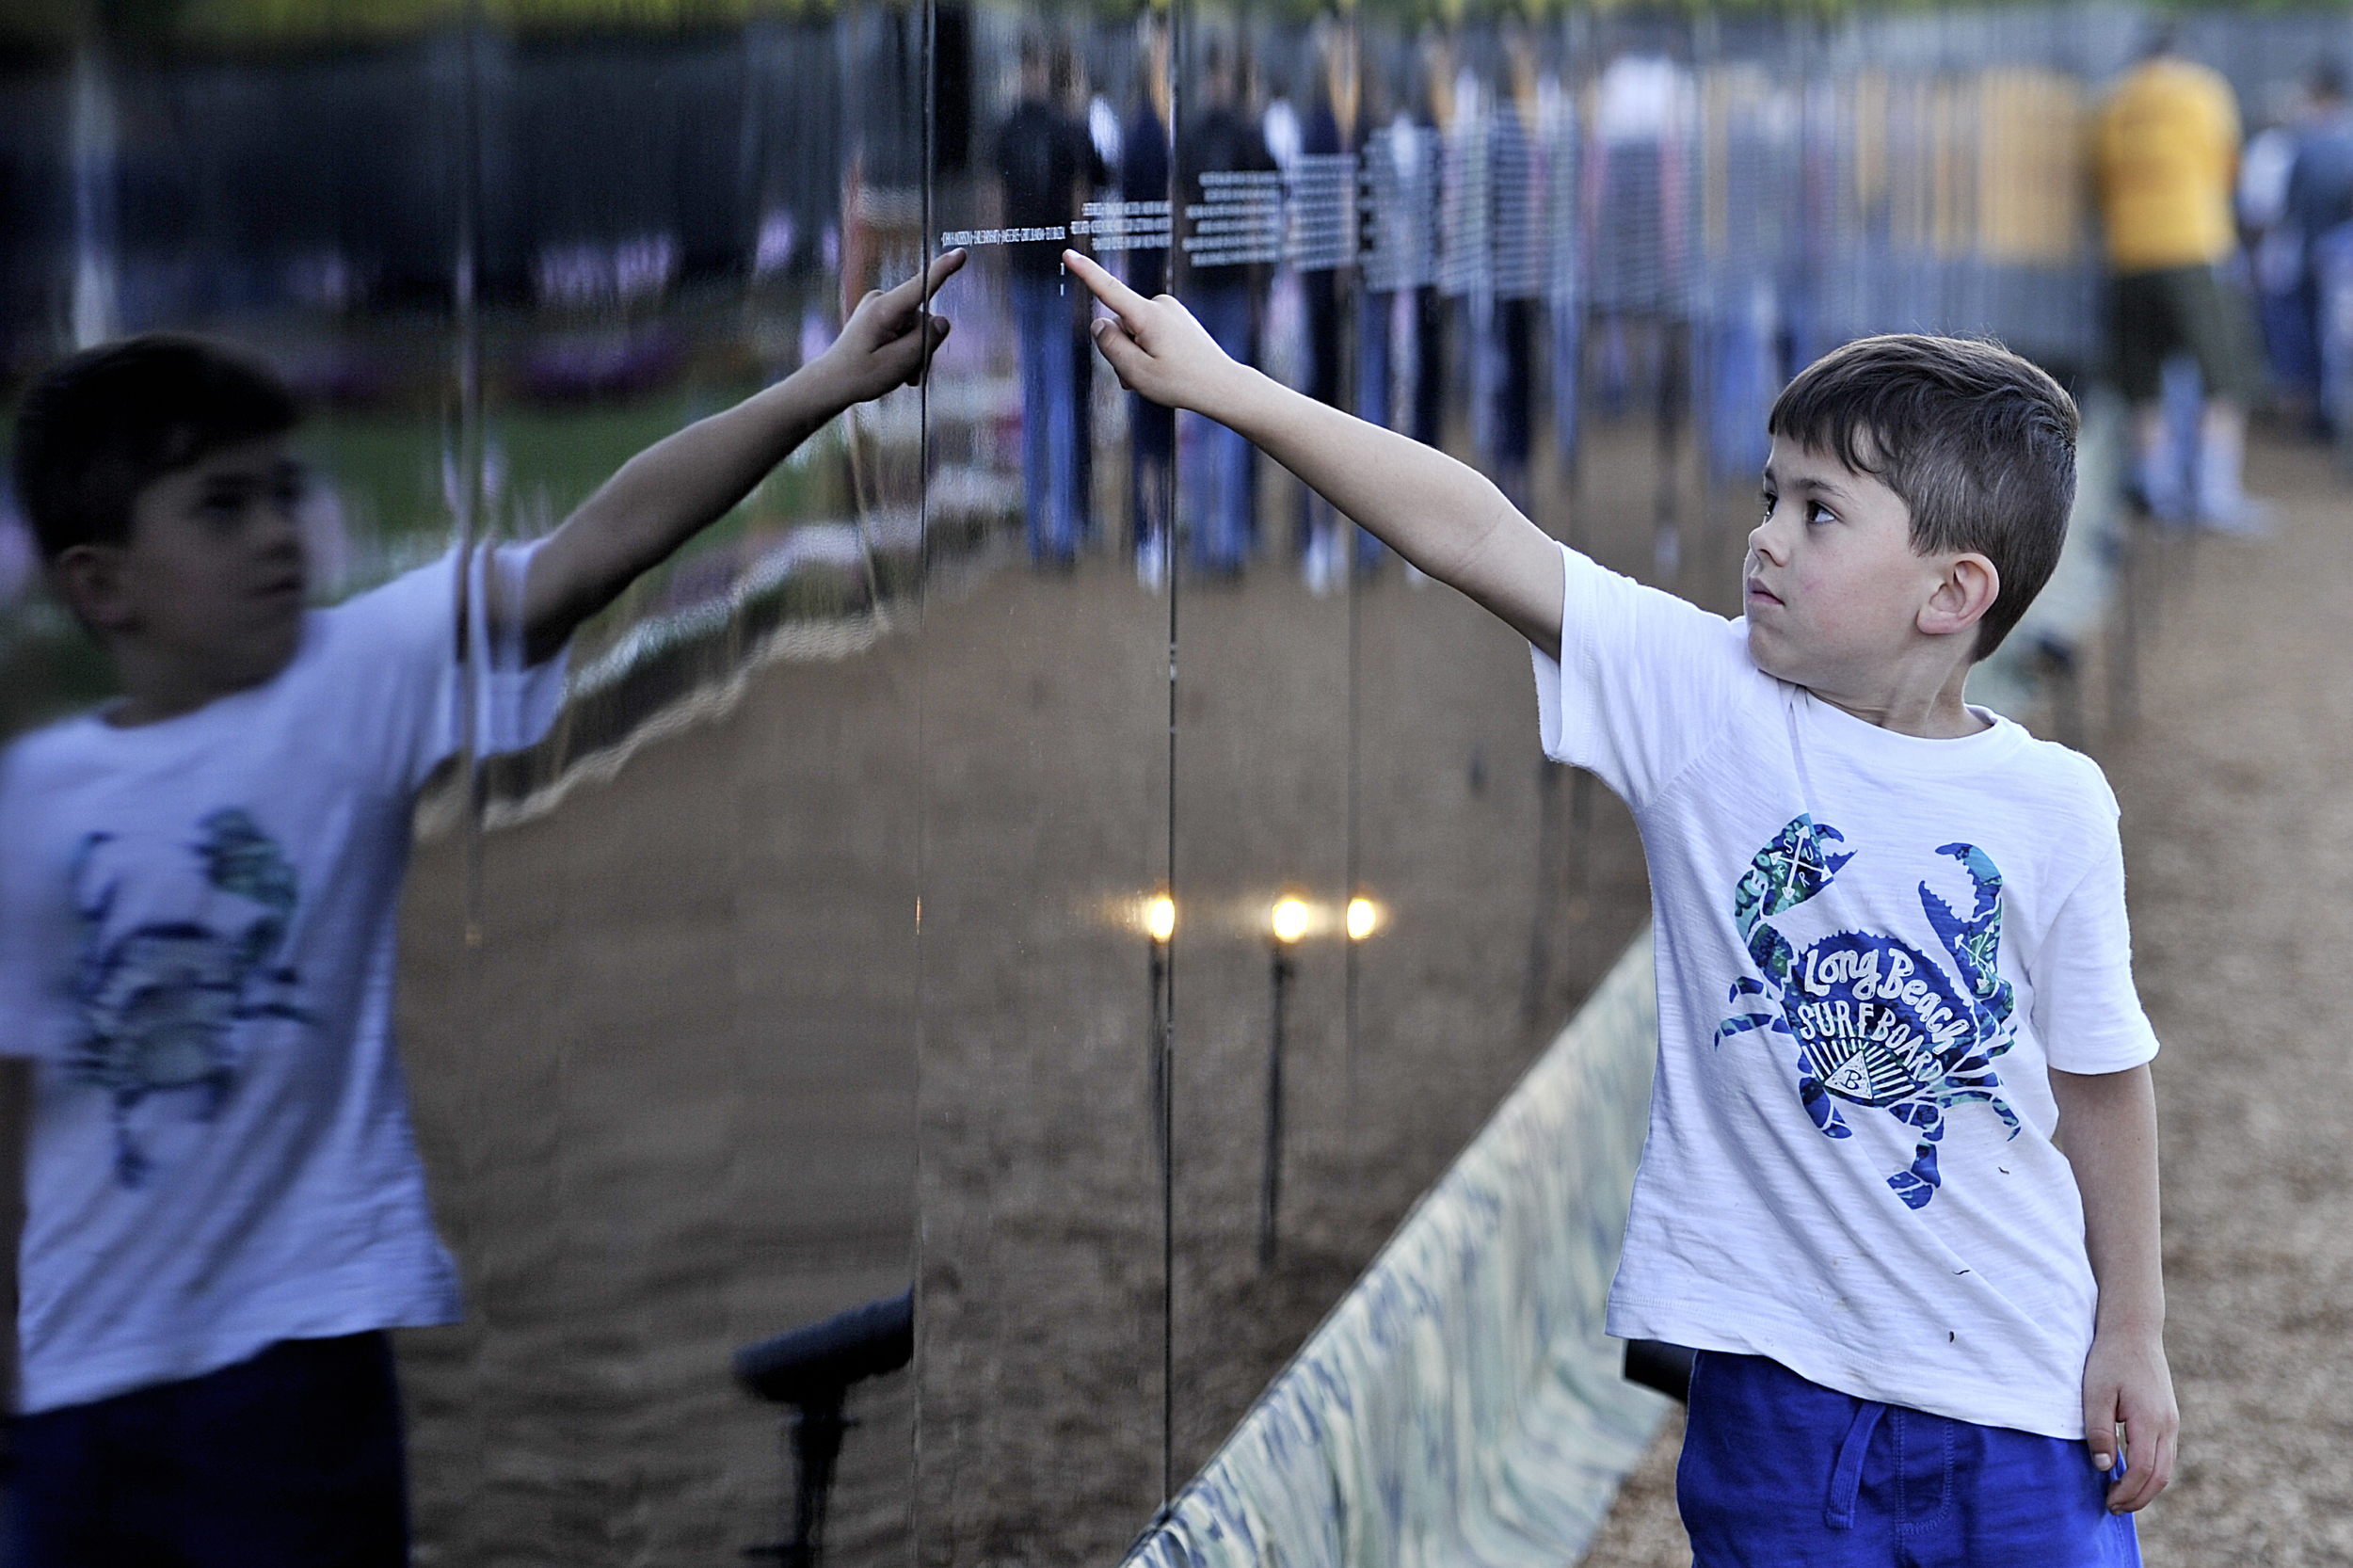 Gavin Jacobs, 6, of Leesport looks at the names on the wall at the Opening Ceremony for the Vietnam Memorial Moving Wall in Muhlenberg, PA, on June 9, 2016. (Sarah Stier: Reading Eagle)